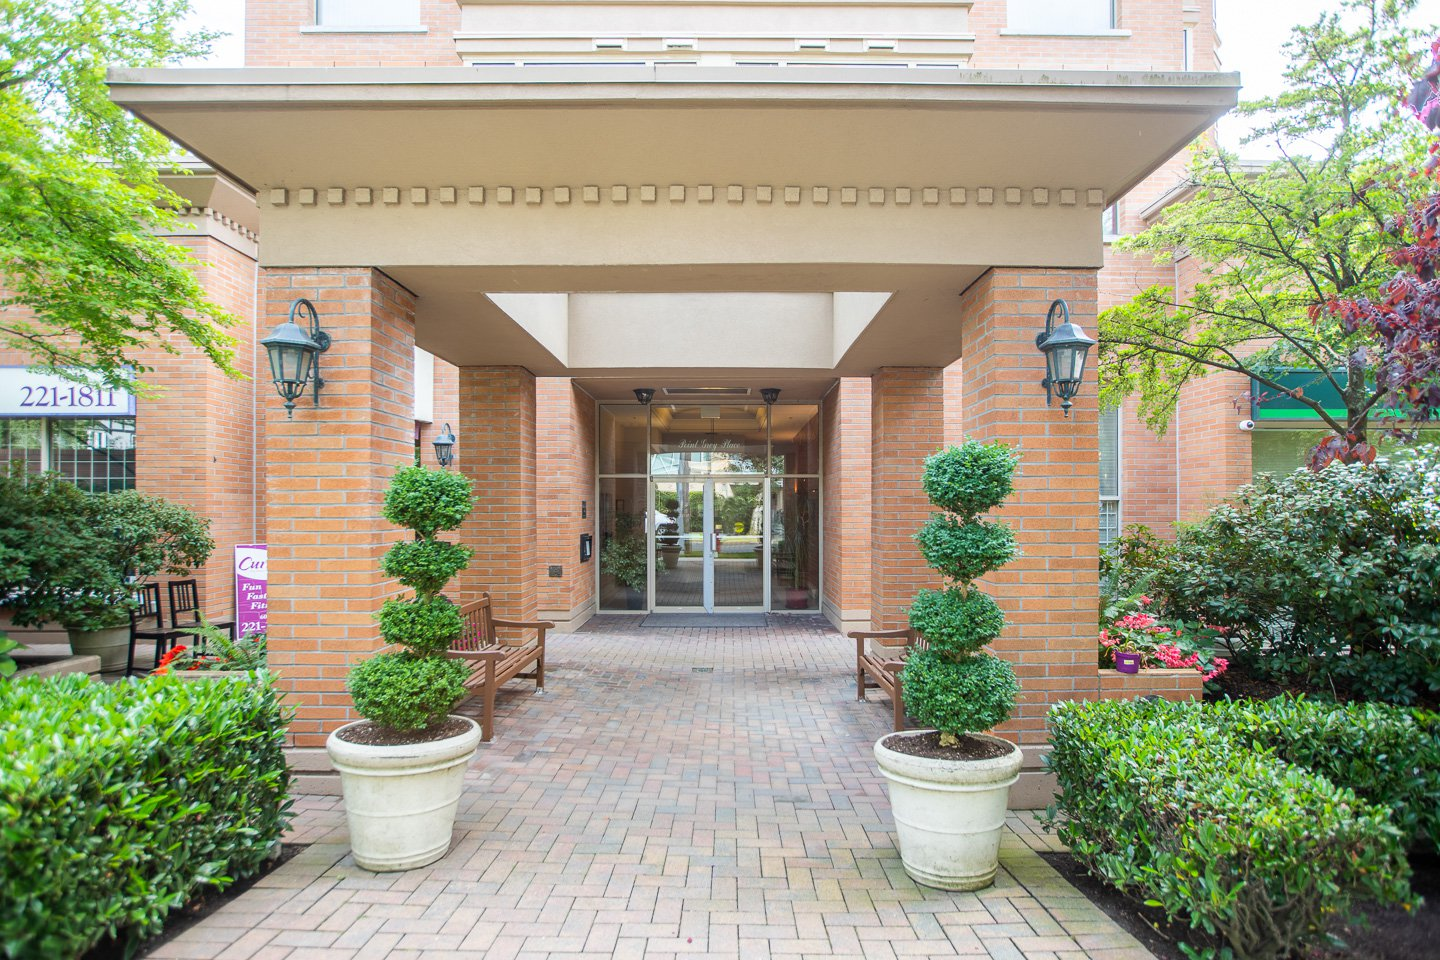 Photo 19: Photos: 401-2580 TOLMIE ST in VANCOUVER: Point Grey Condo for sale (Vancouver West)  : MLS®# R2397003